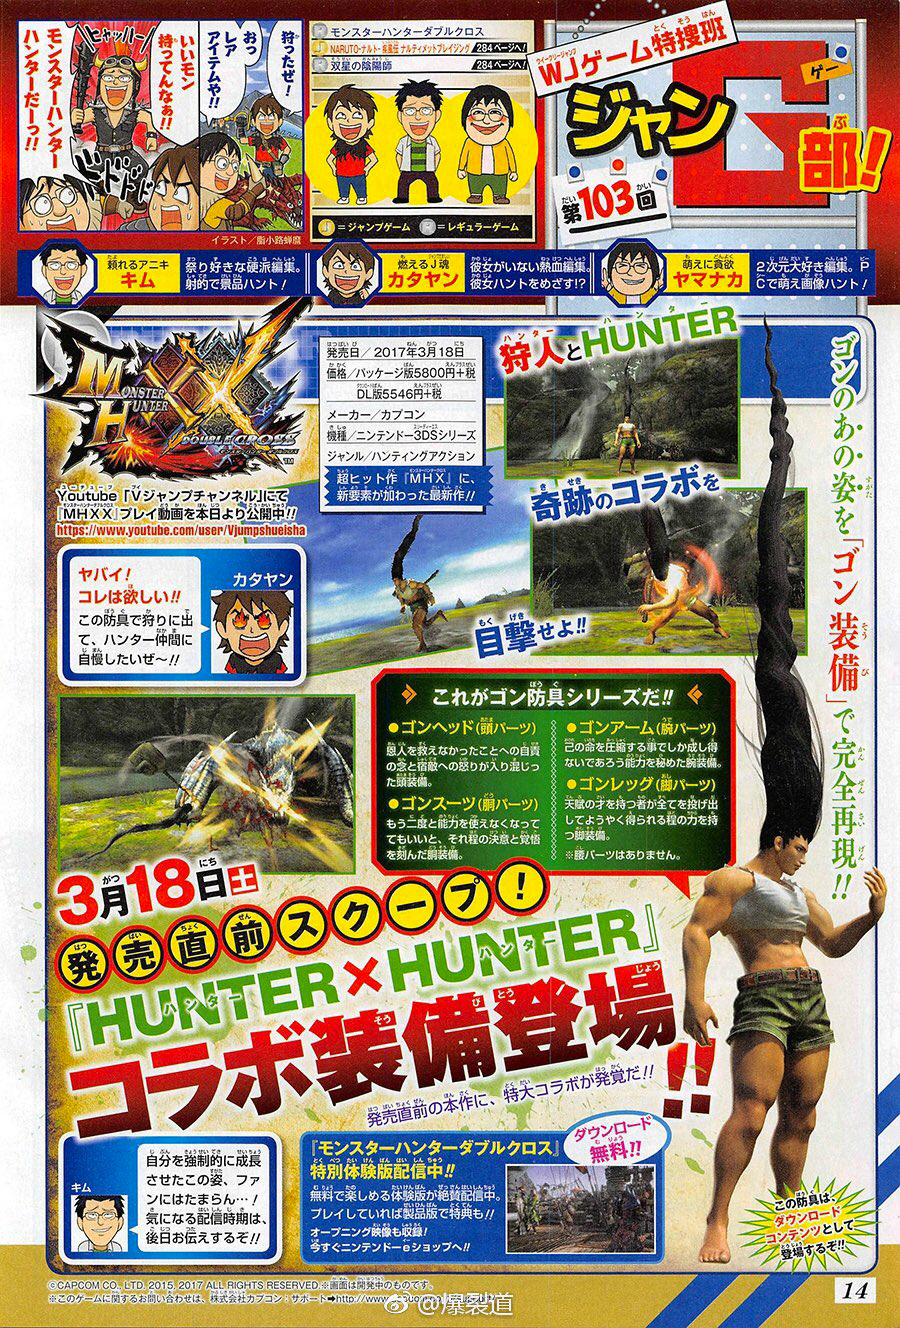 Monster Hunter XX x Hunter X Hunter